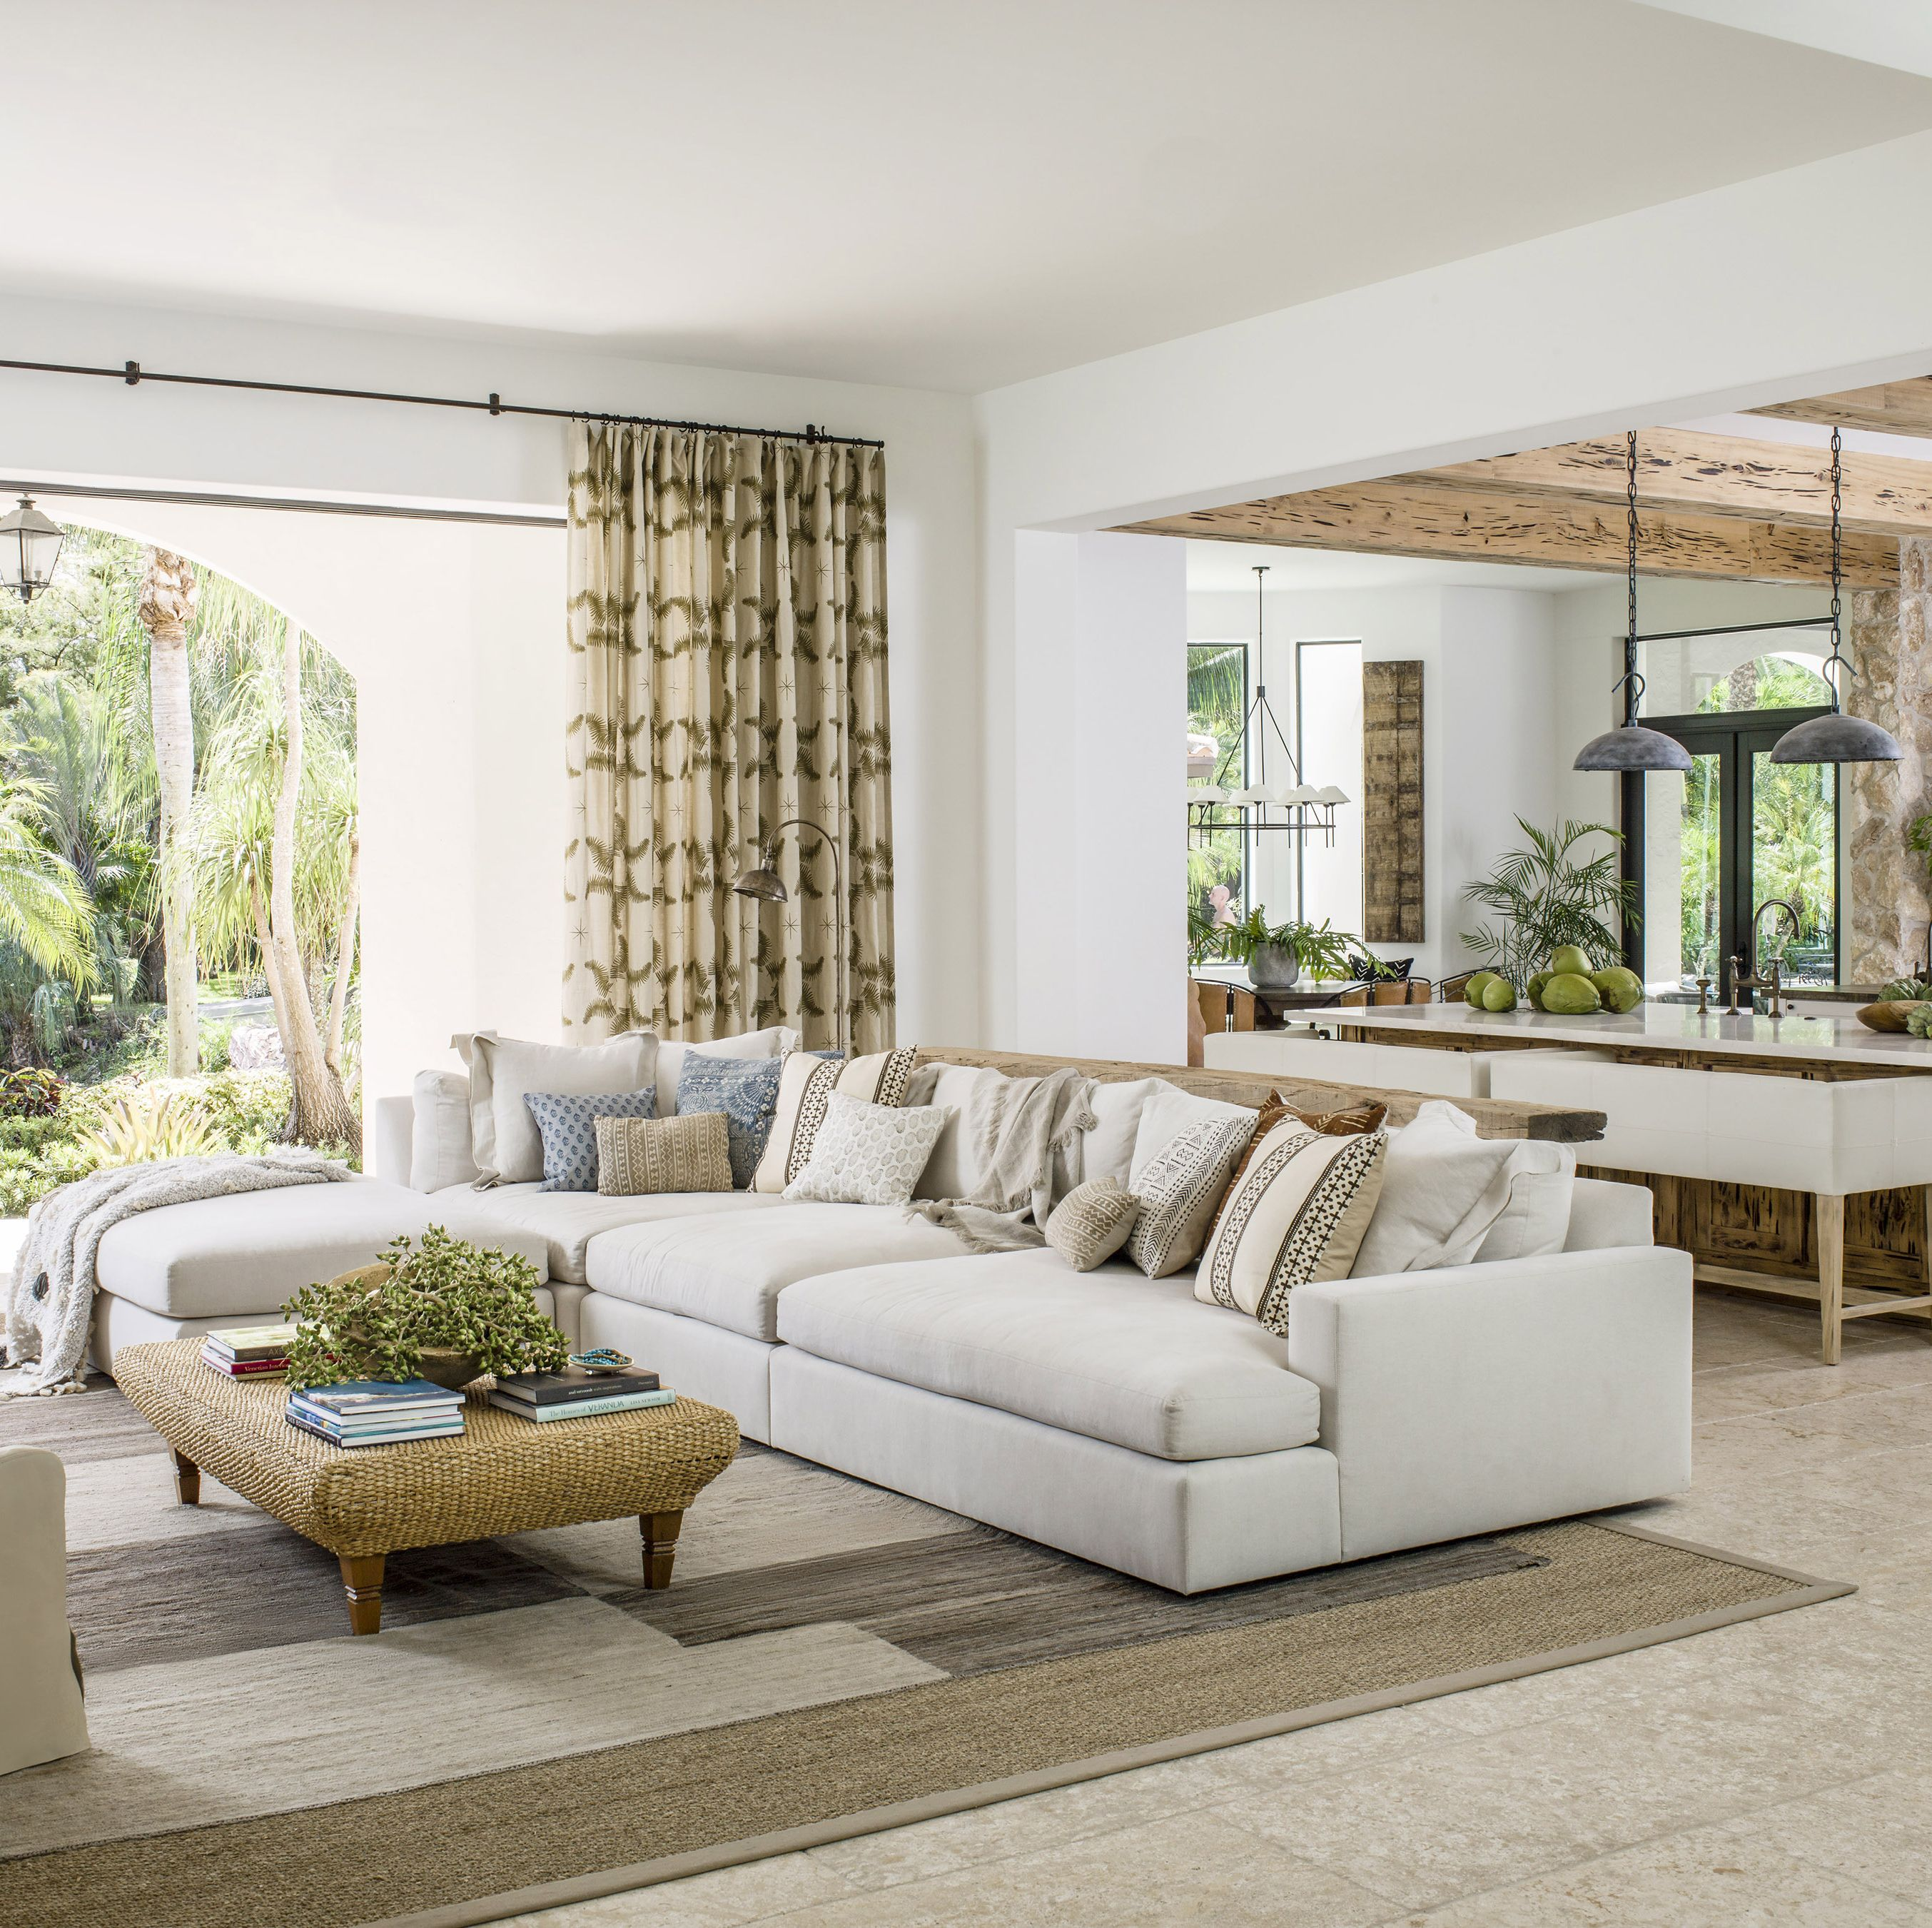 Inside a Florida Bachelor Pad That Seamlessly Blends the Indoors and Out